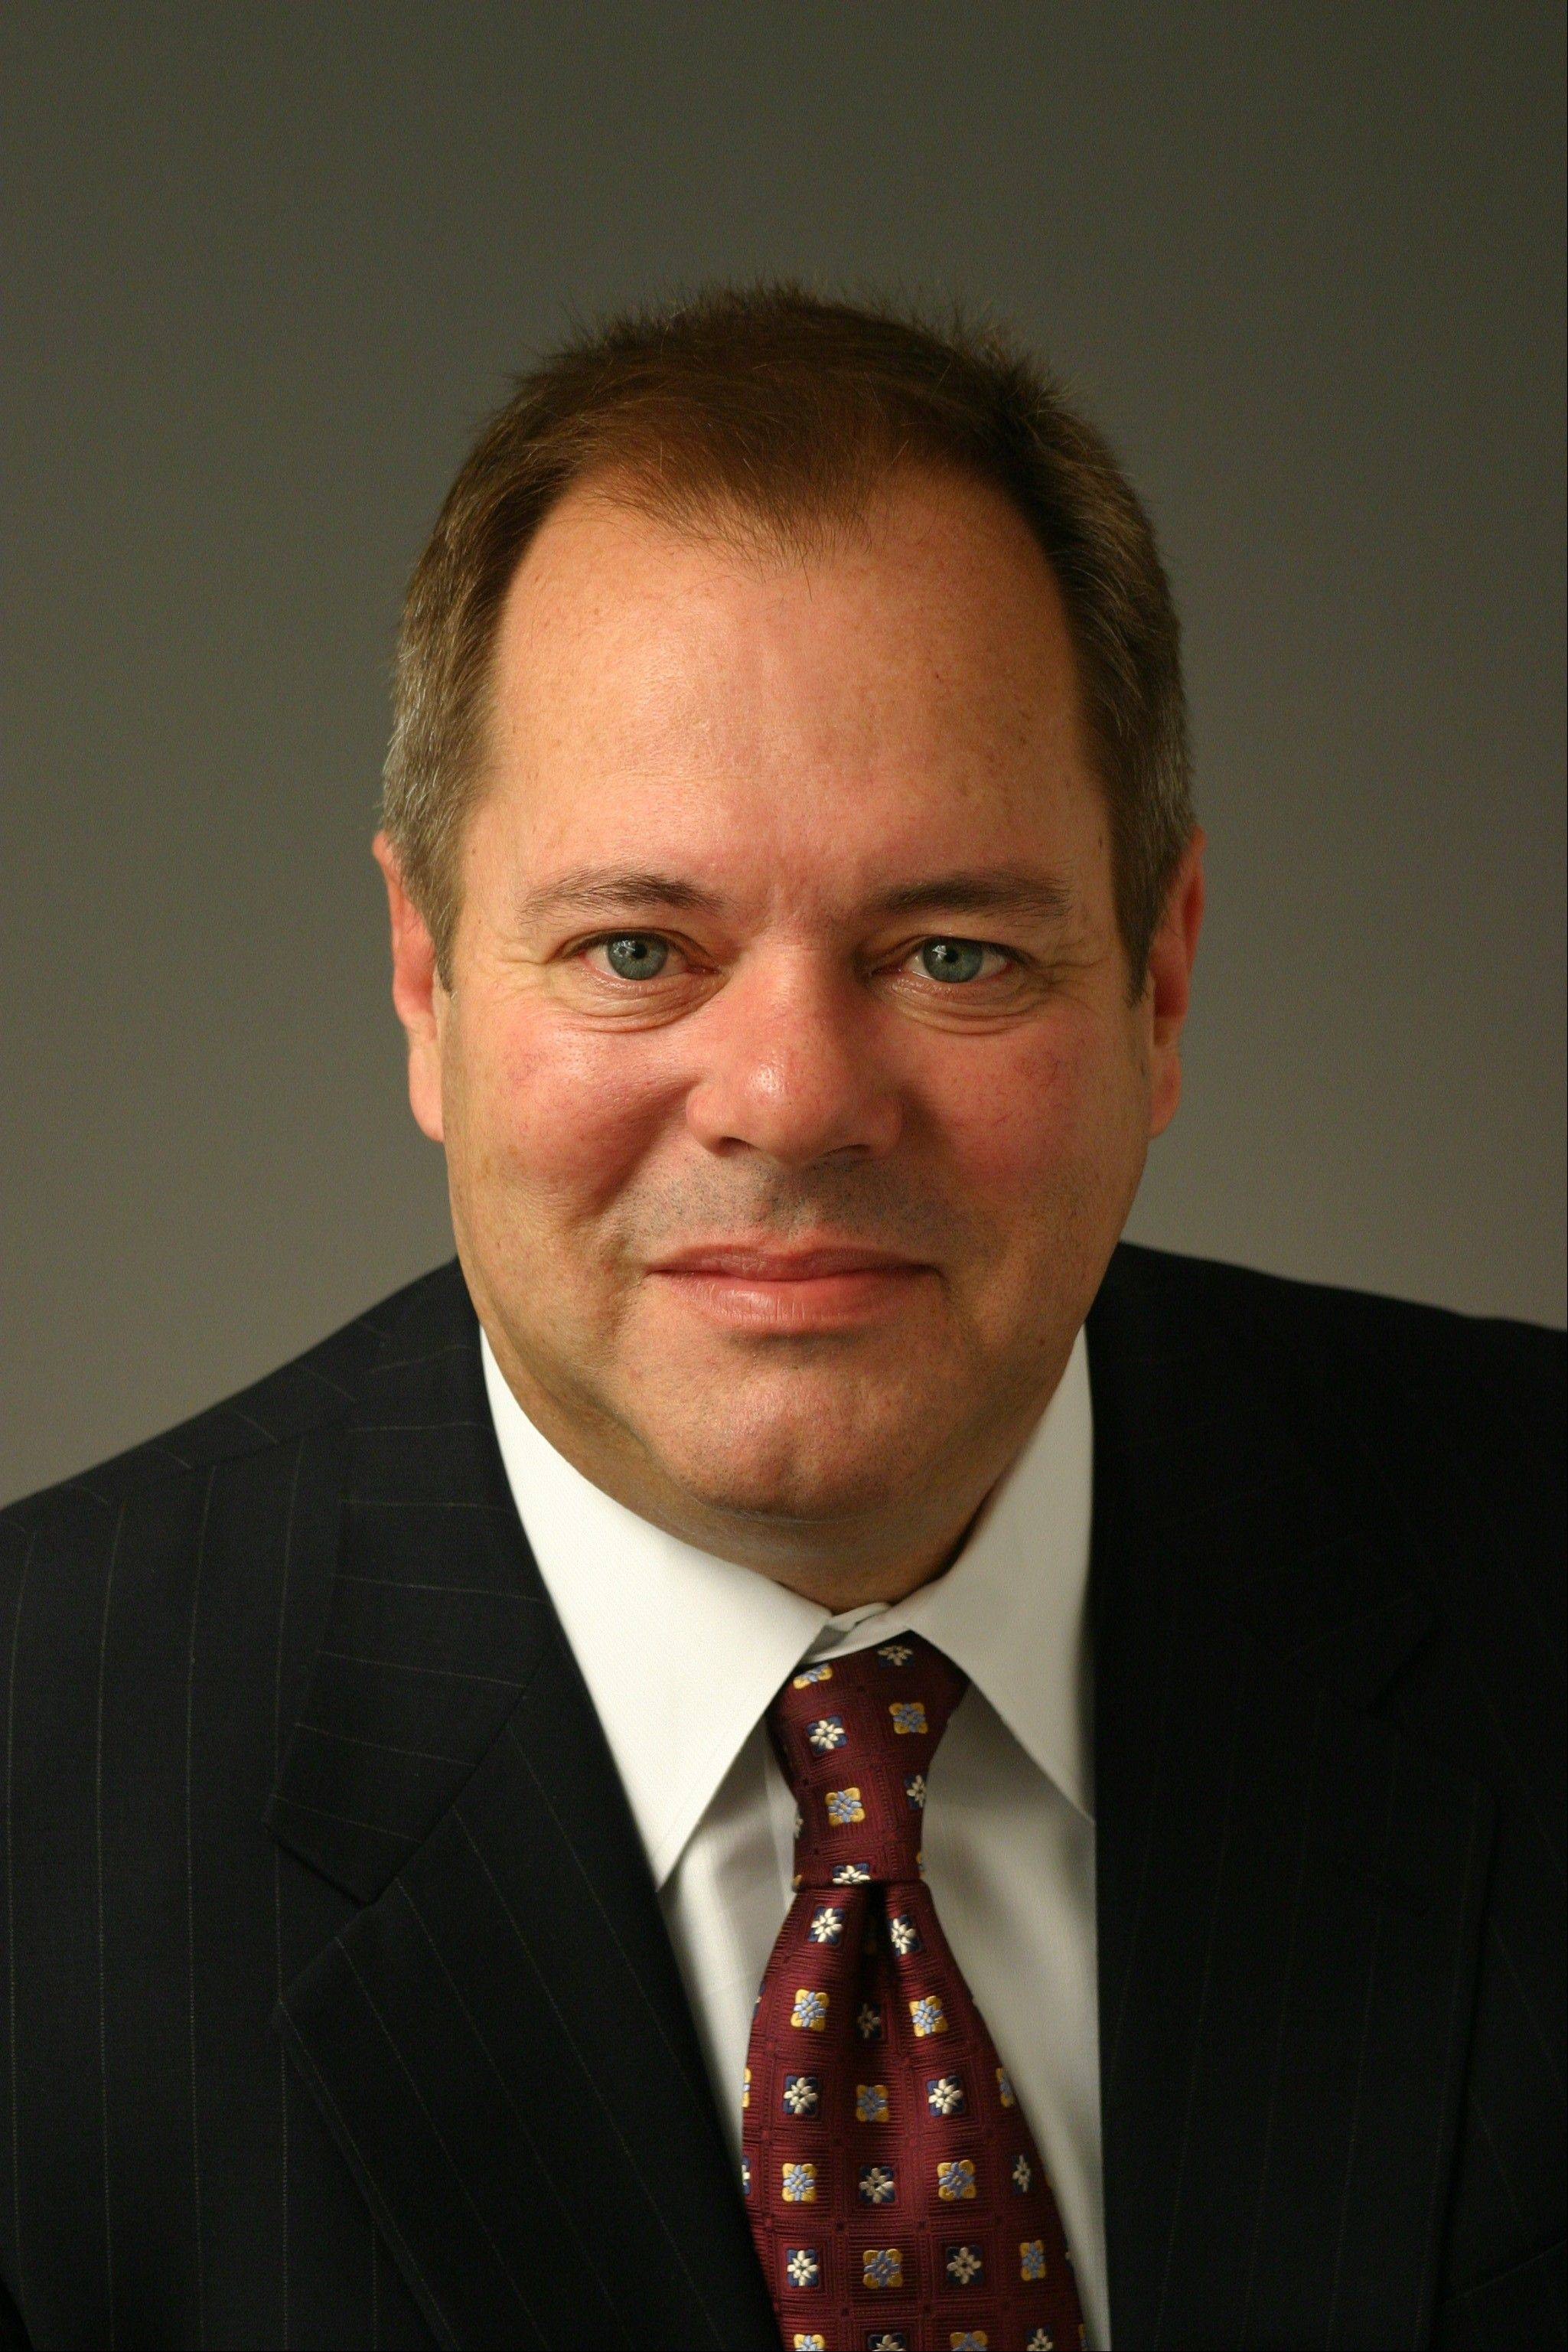 Mark Bishof, CEO of Schaumburg-based Flexera Software